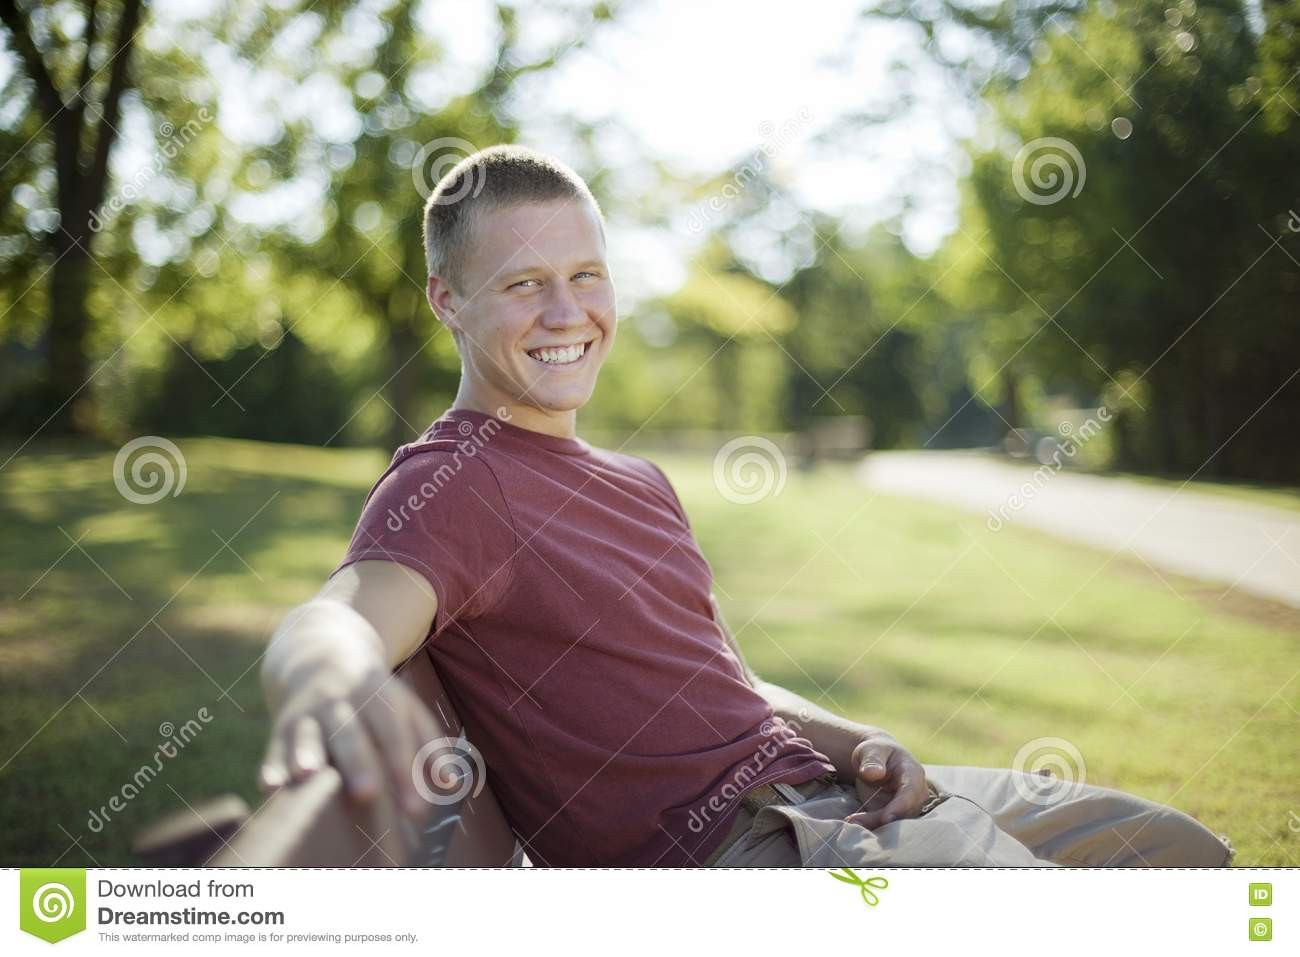 More similar stock images of ` Handsome Teen Boy `